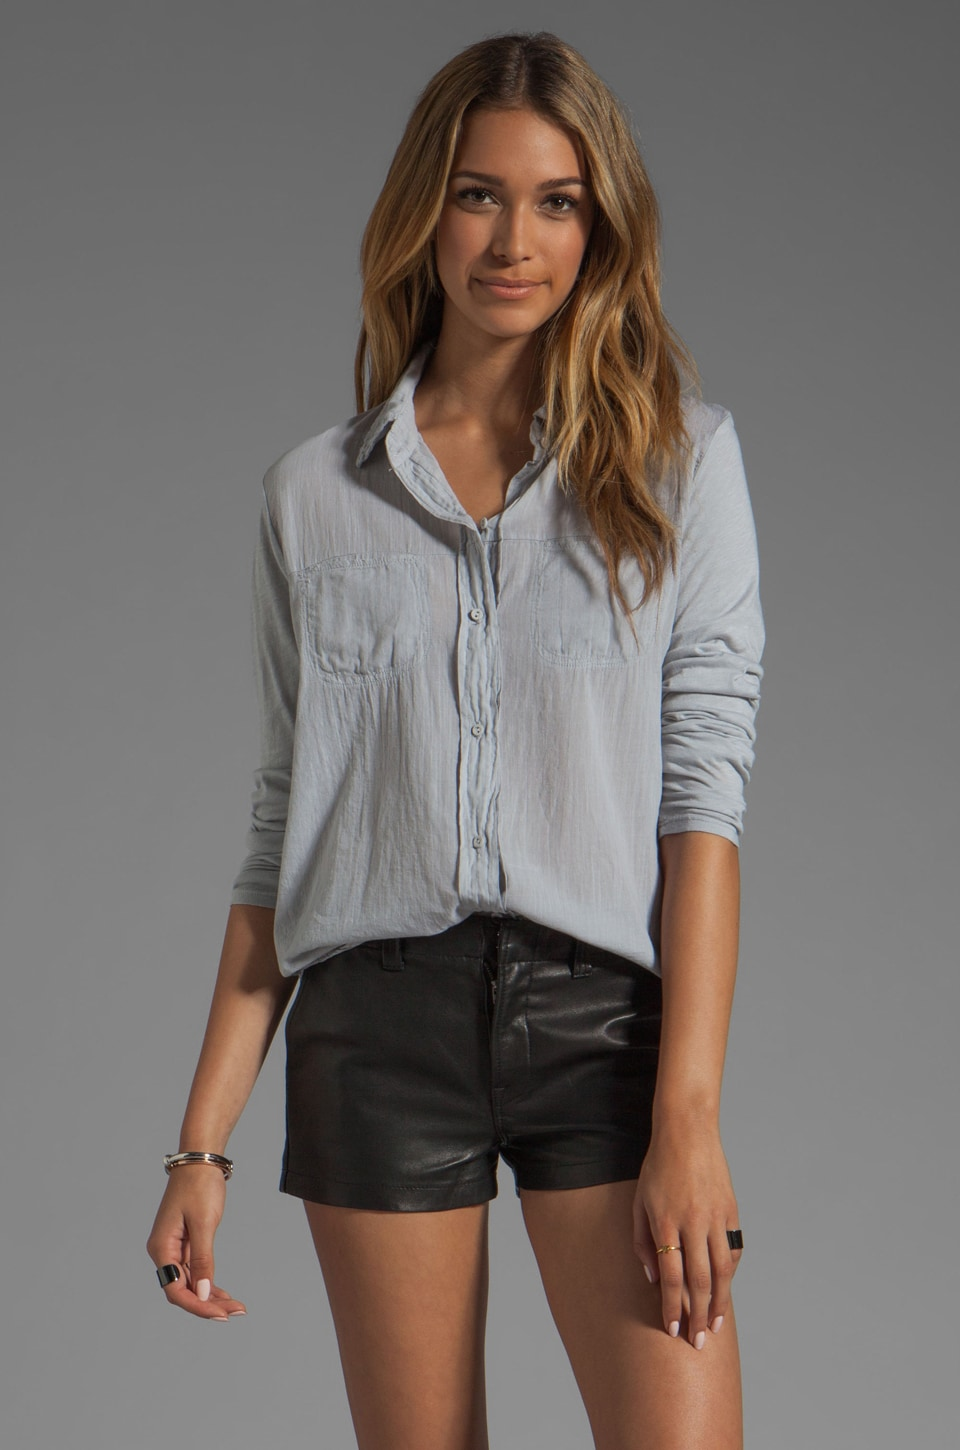 Michael Stars Long Sleeve Shirt with Voile Mix in Chateau